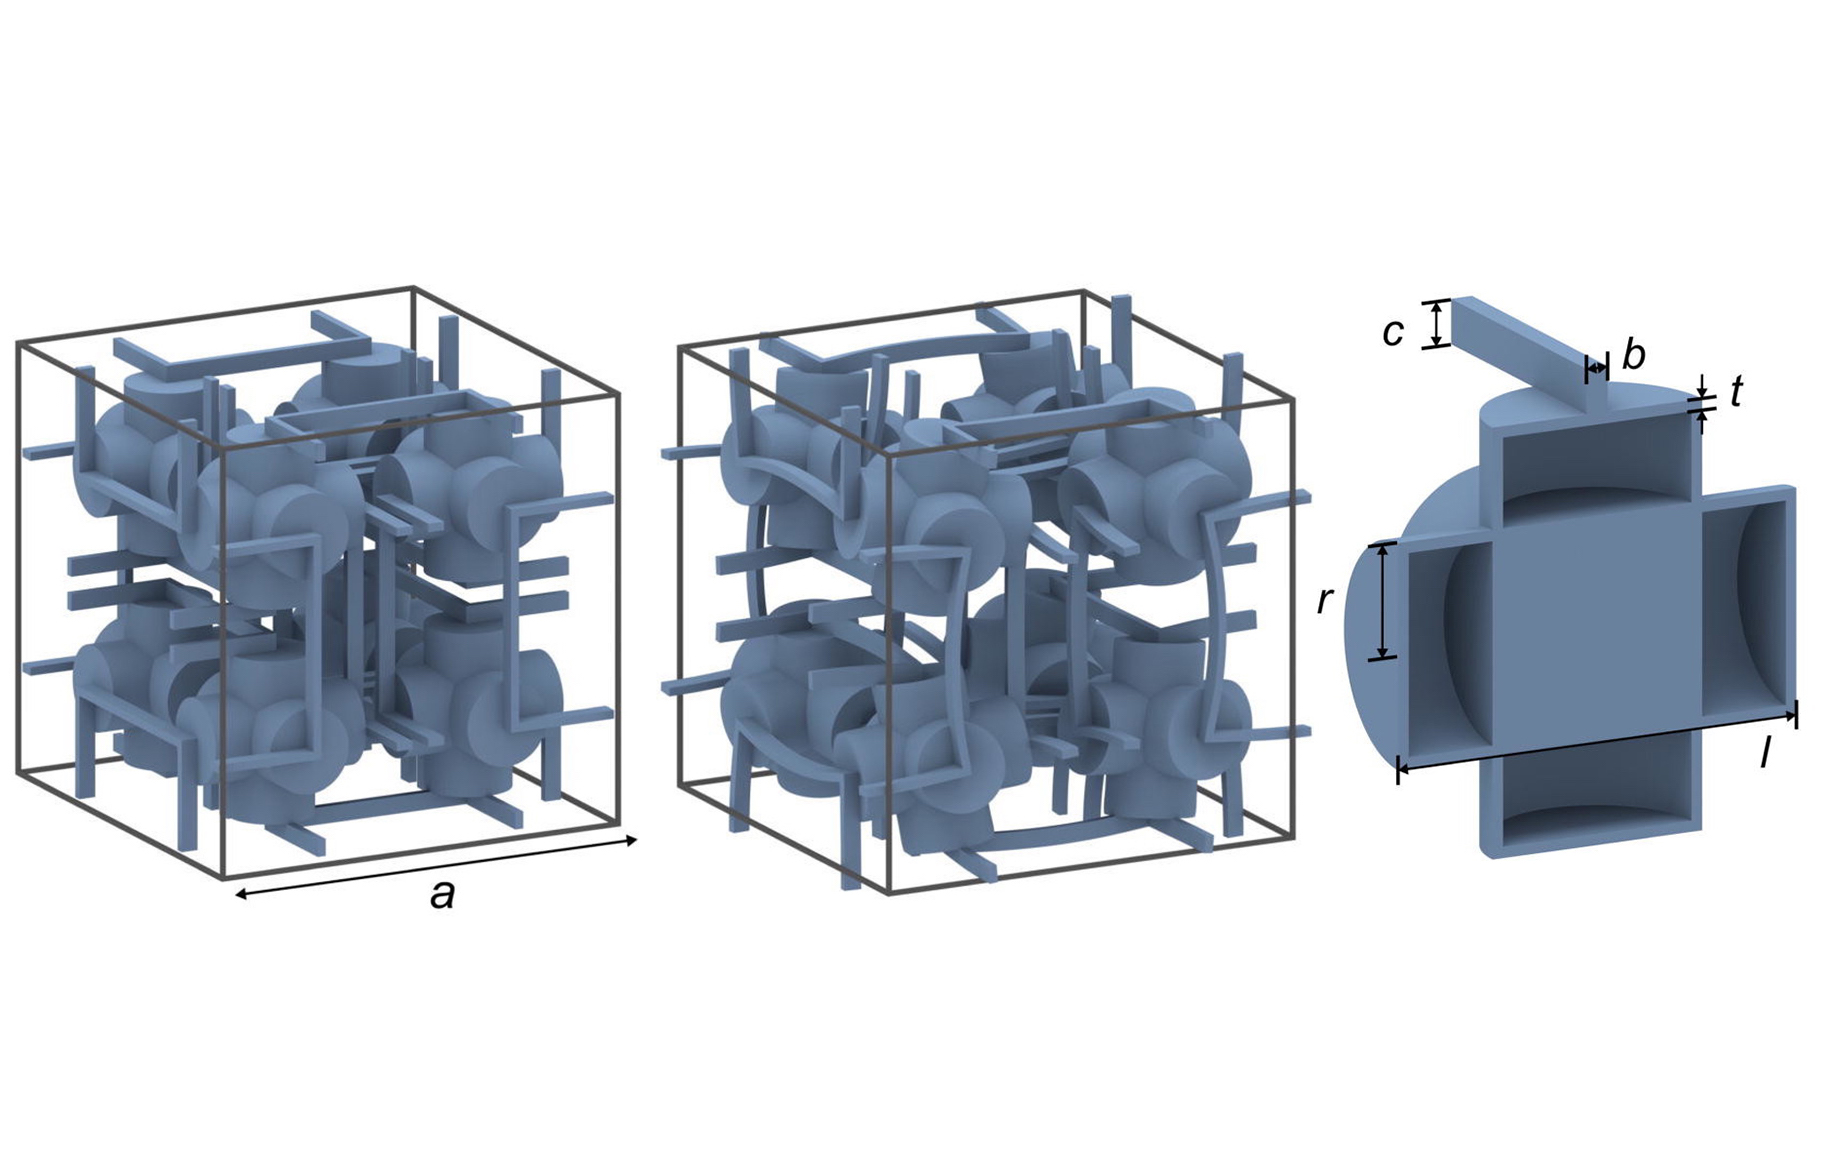 Researchers blueprint a 3d printed metamaterial that for 3d printer blueprints